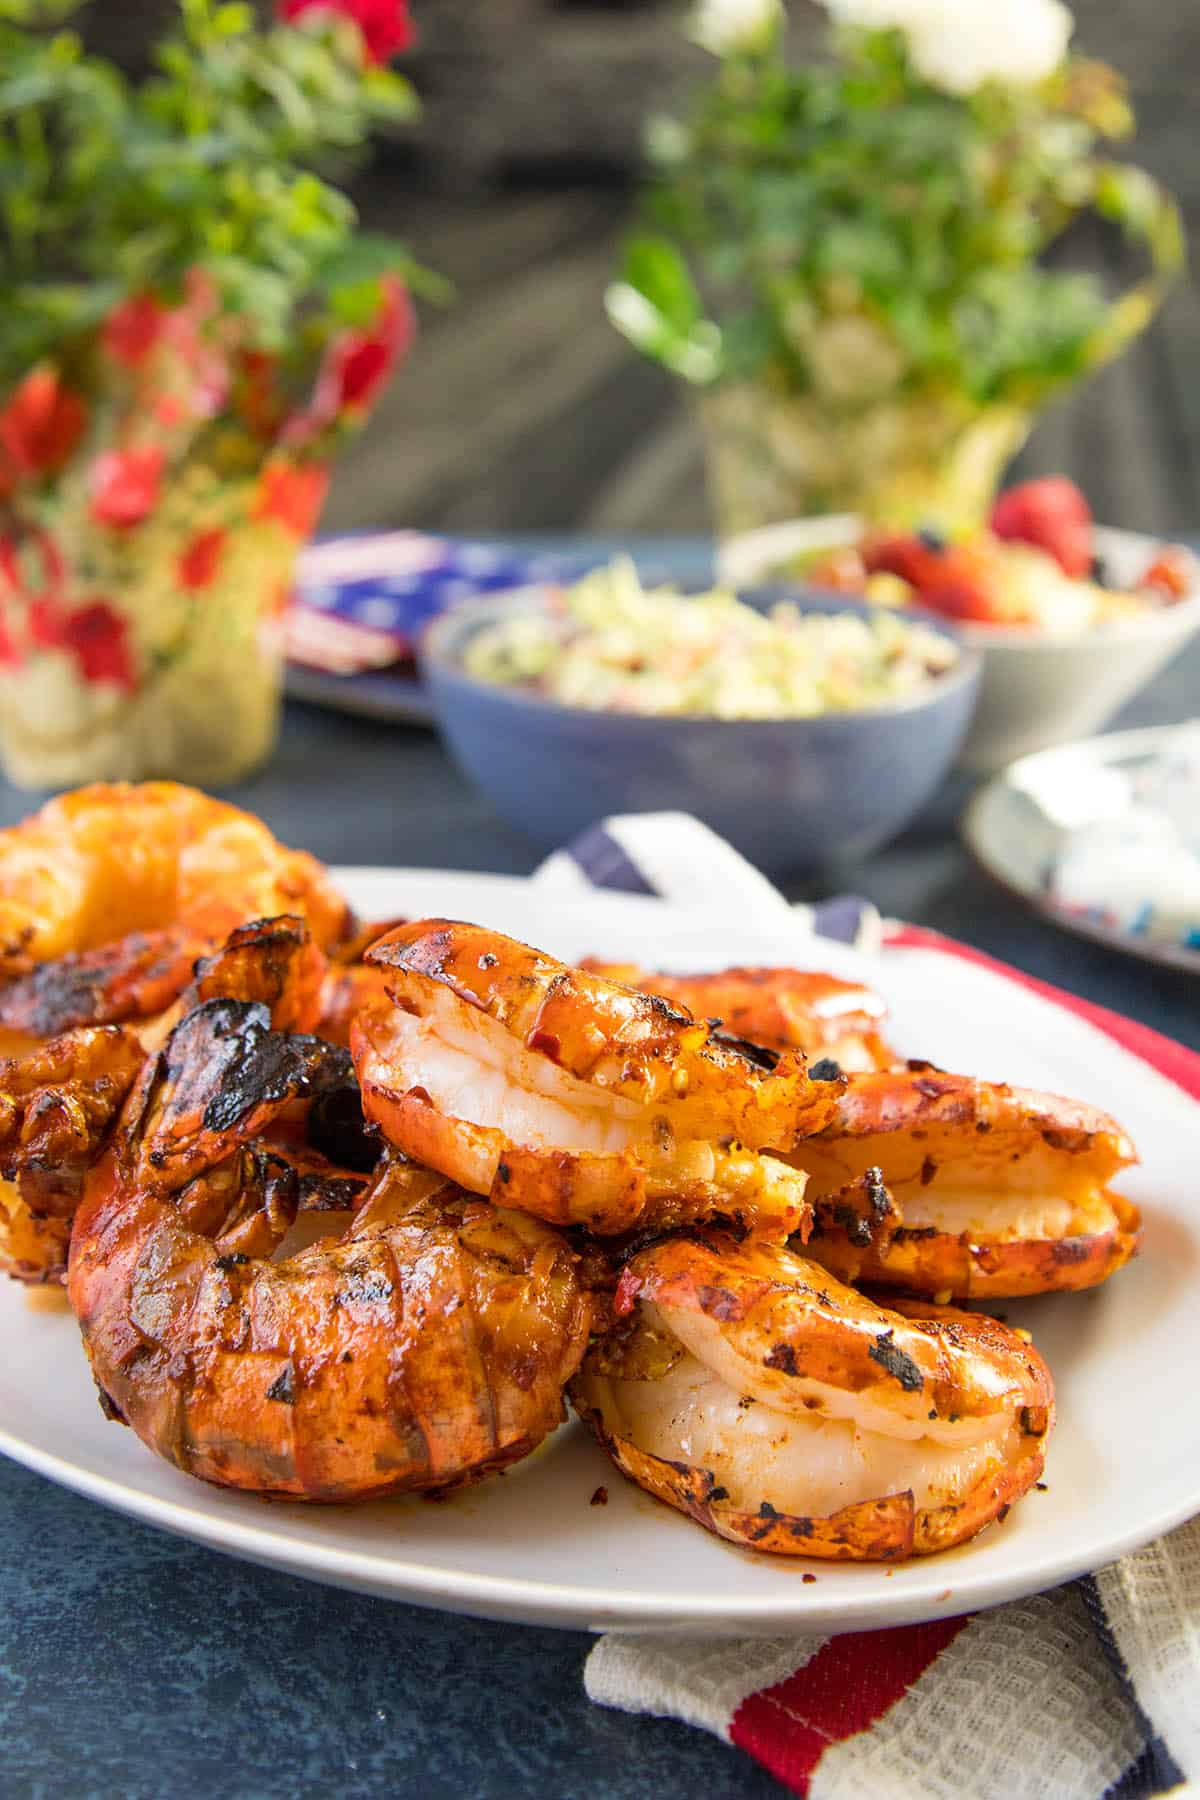 Colossal Grilled Shrimp - Plated anColossal Grilled Shrimp - Plated and Ready for Your Dinnerd Ready for Your Dinner